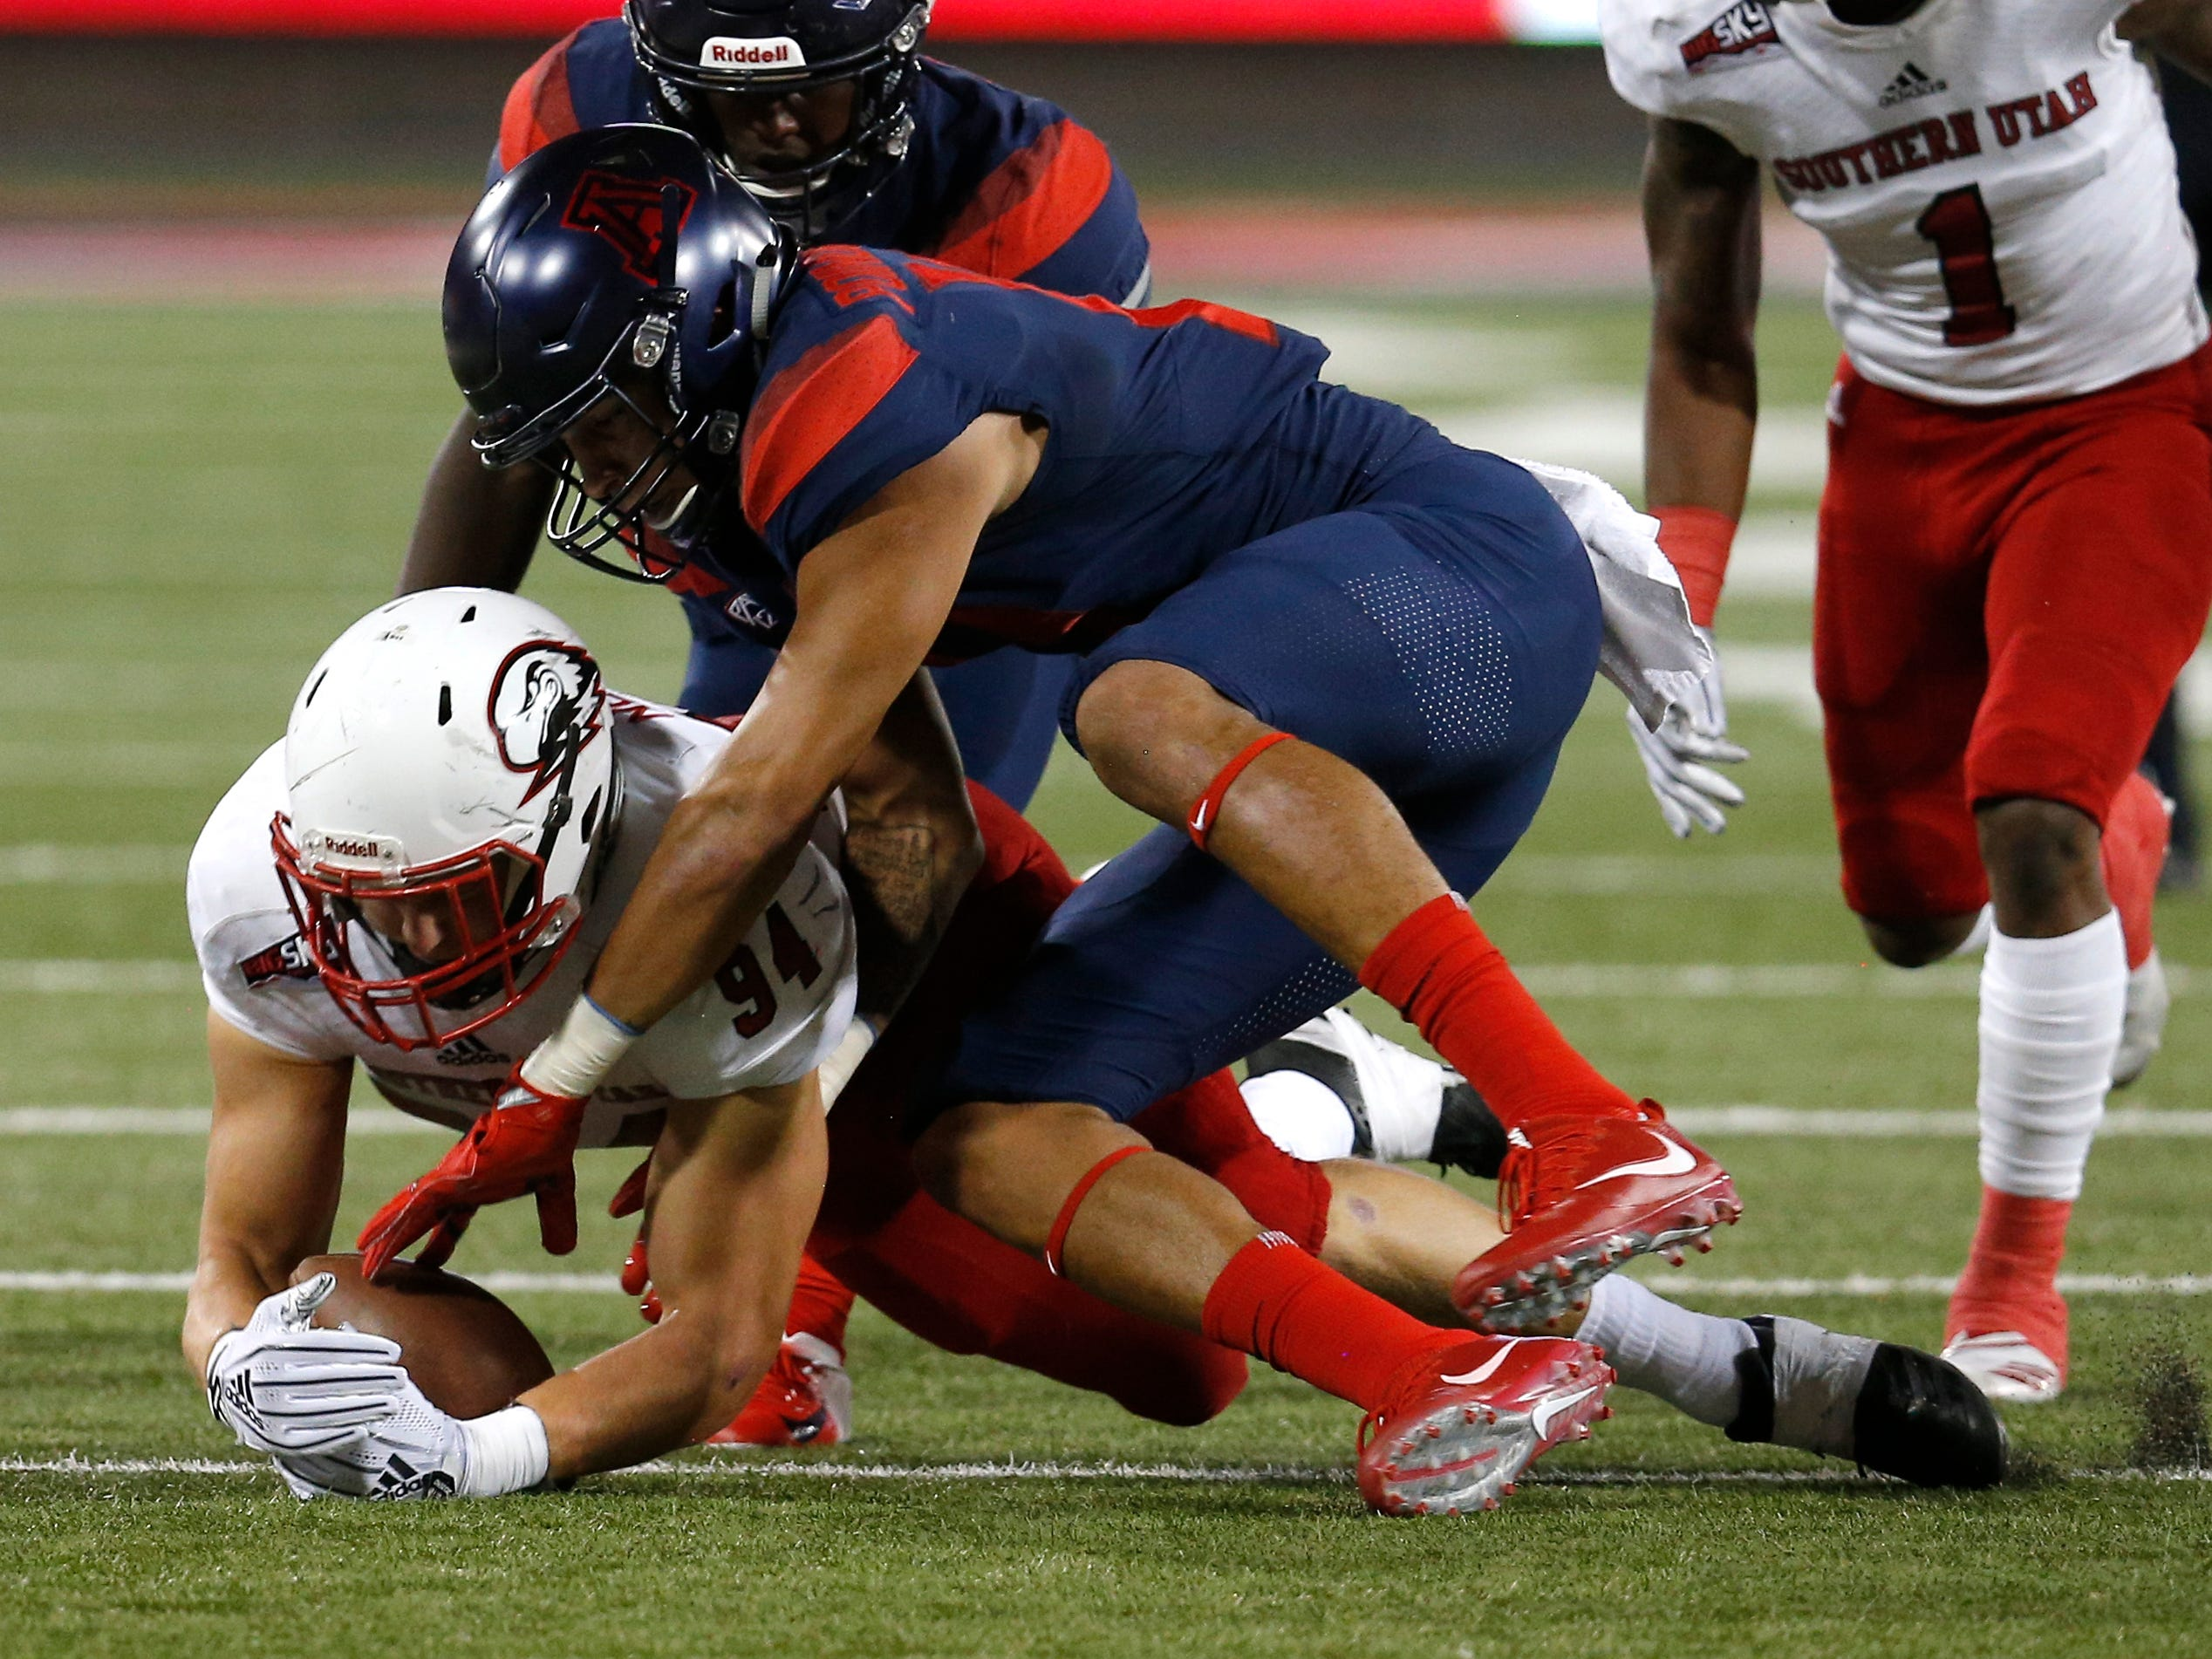 Southern Utah linebacker Taylor Nelson (94) recovers a fumble in front of Arizona wide receiver Shawn Poindexter in the first half during an NCAA college football game, Saturday, Sept. 15, 2018, in Tucson, Ariz. (AP Photo/Rick Scuteri)